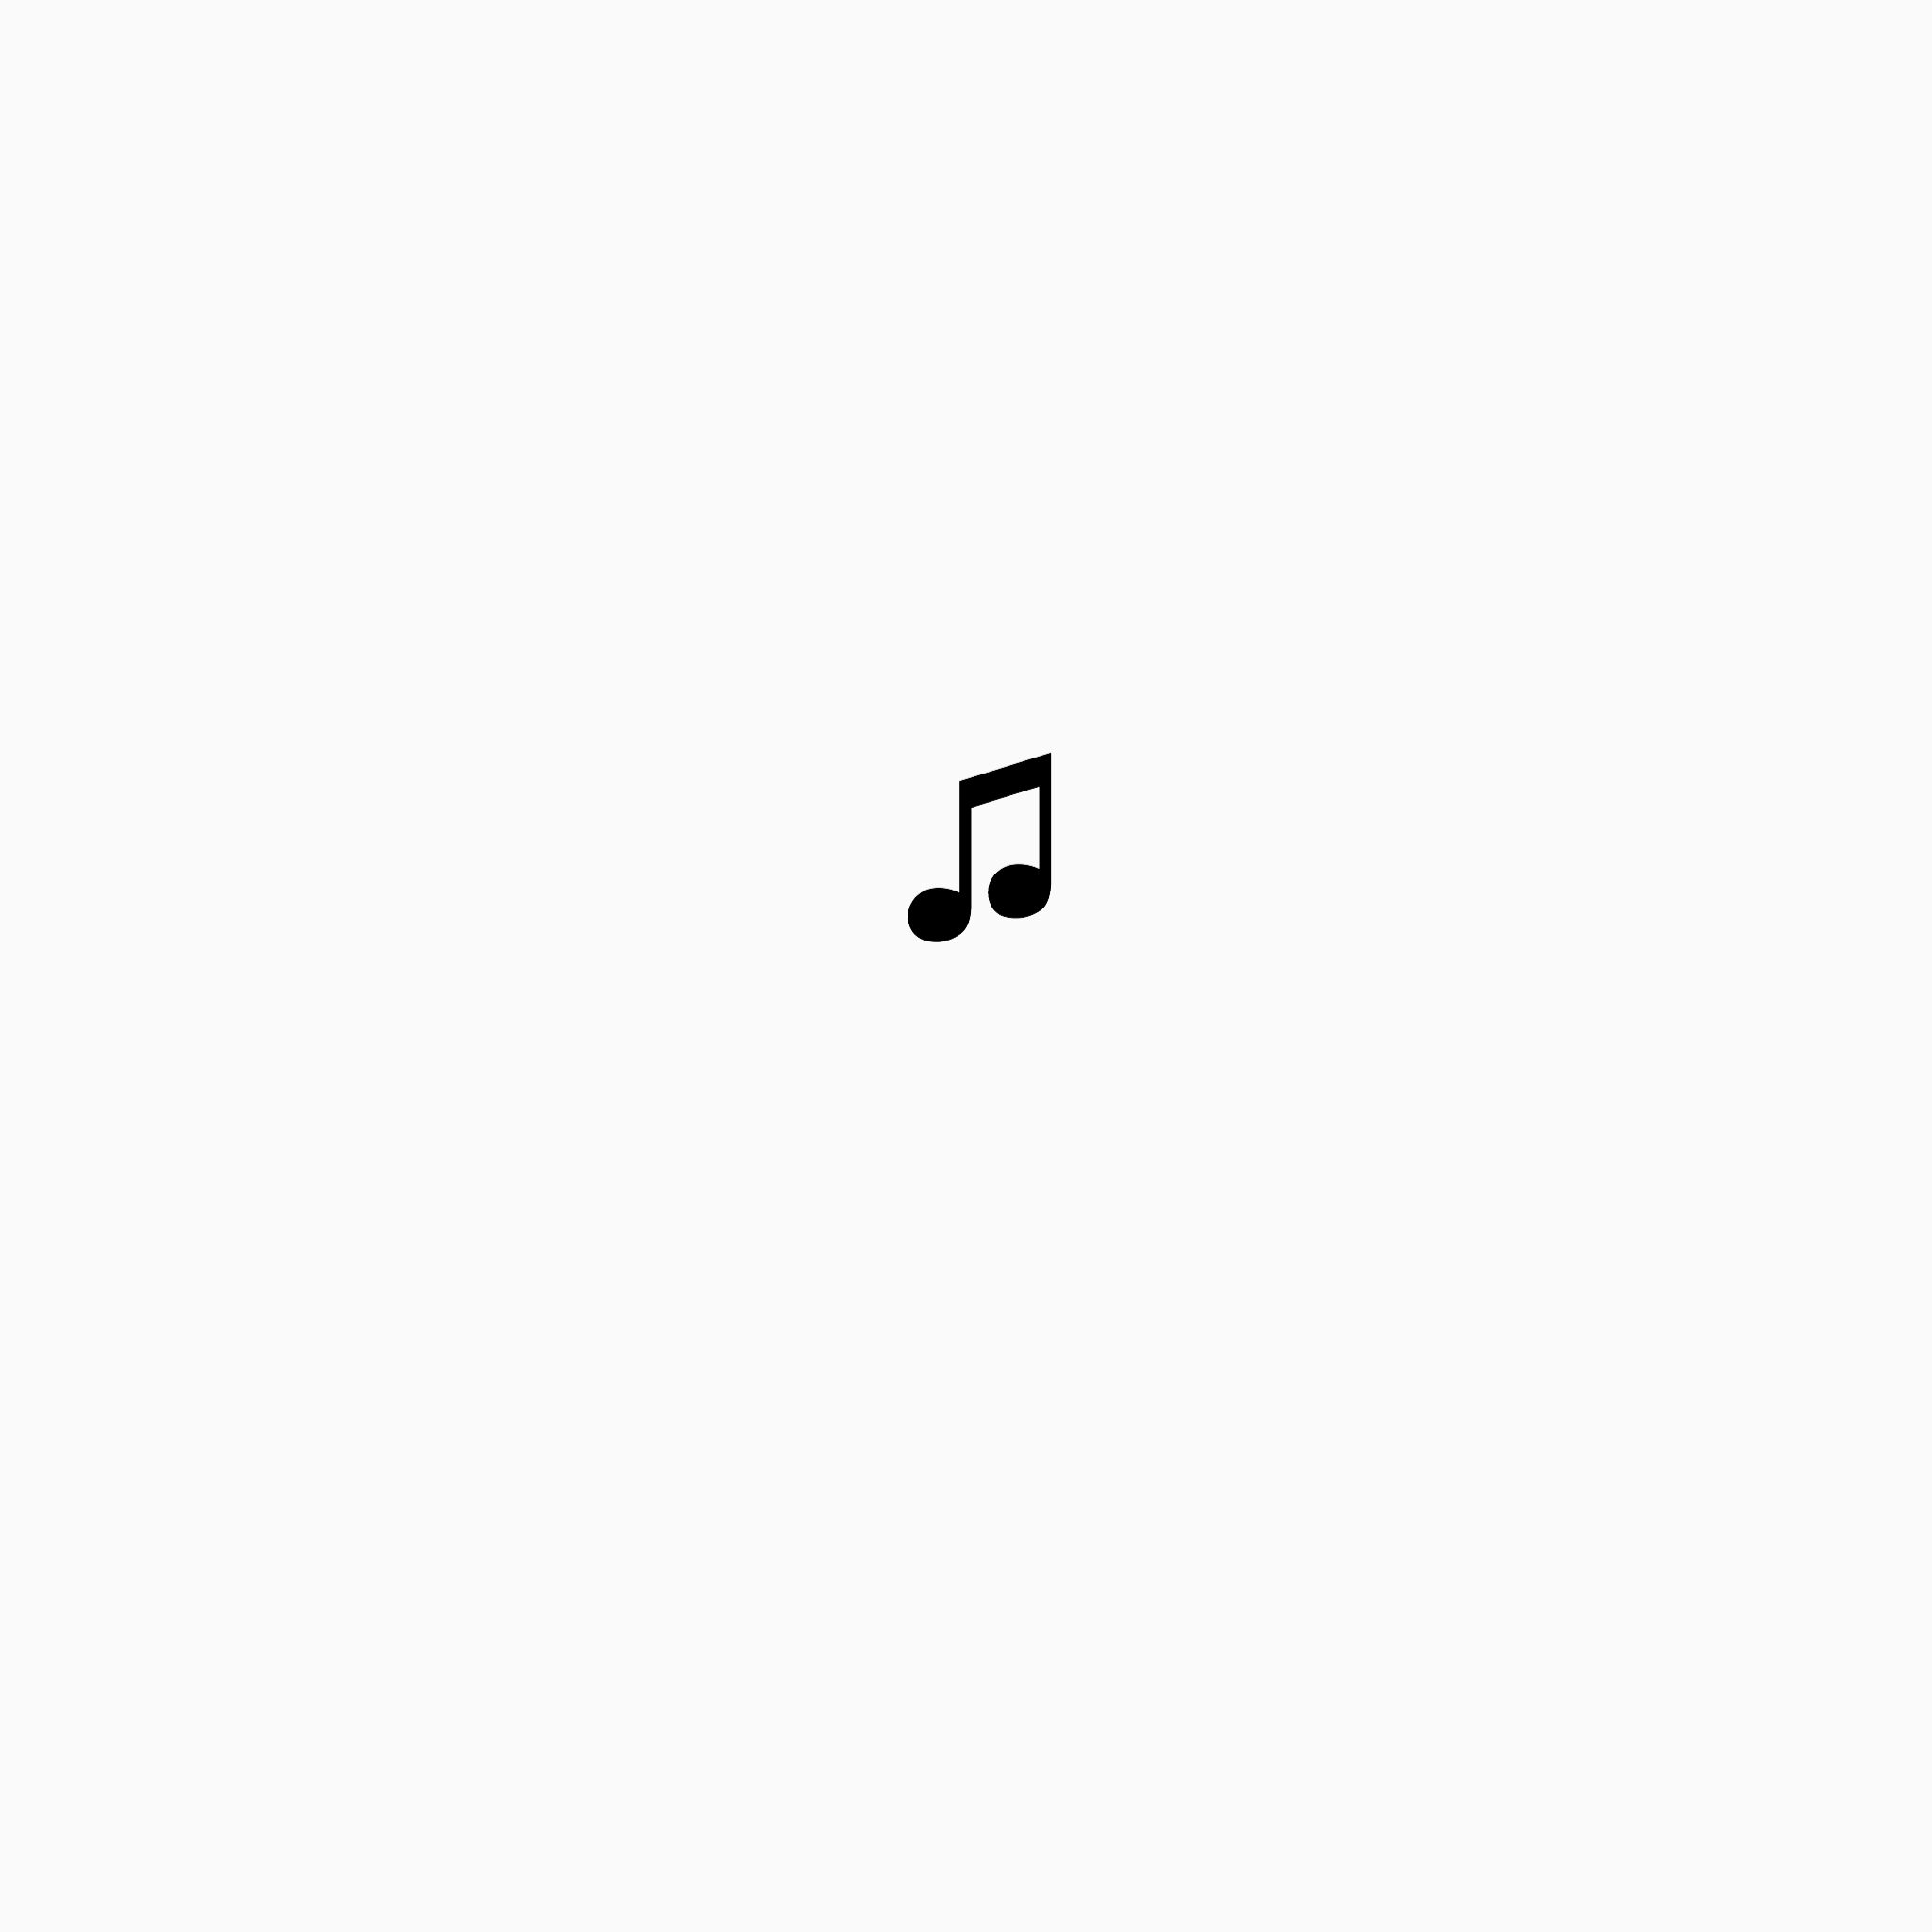 Preview Of Music Note Symbol Colorfull Wallpaper Hd Wallpapers